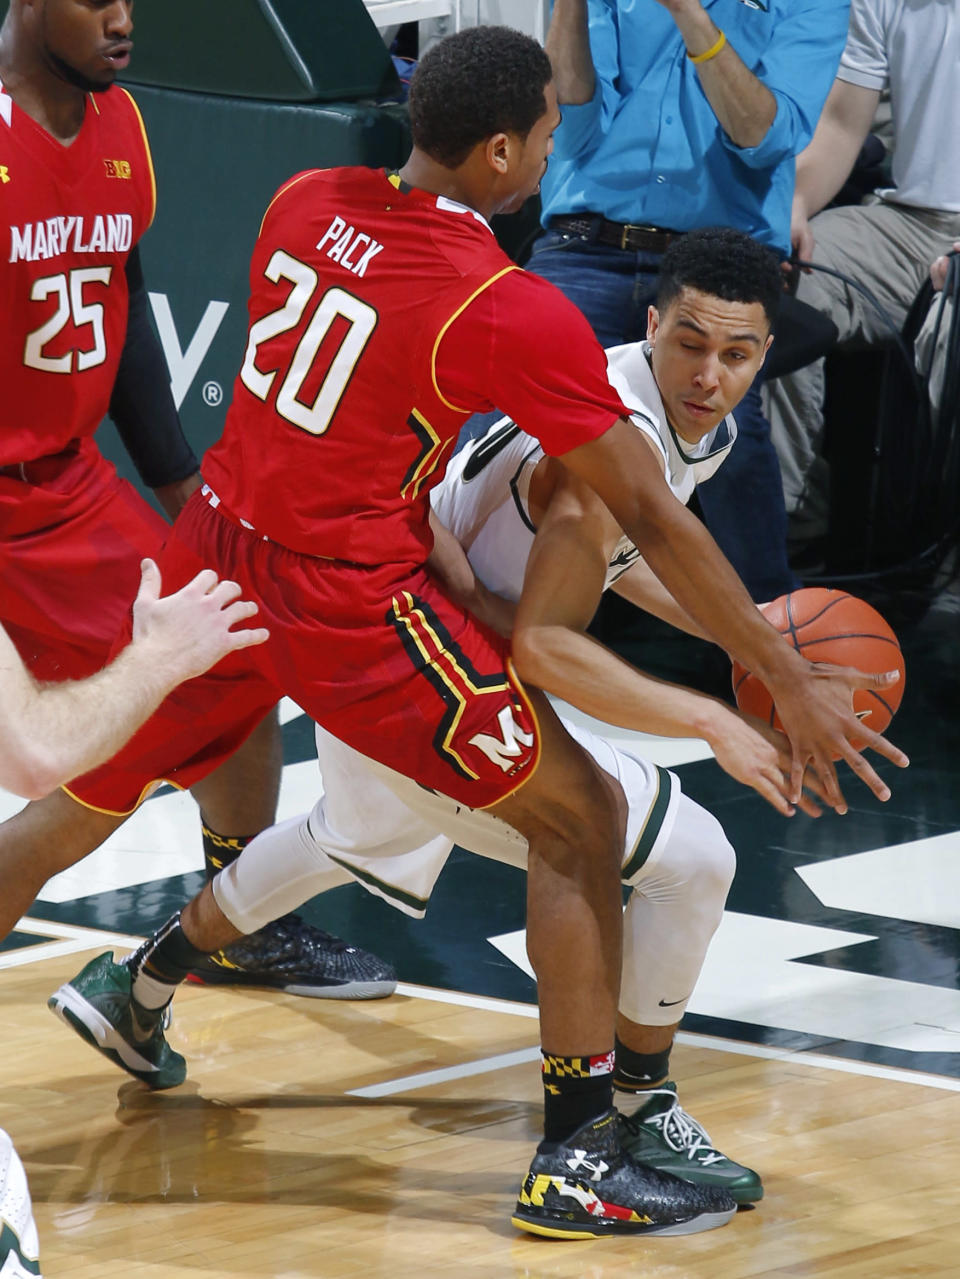 Michigan State's Travis Trice, right, is pressured by Maryland's Richaud Pack (20) during the first half of an NCAA college basketball game, Tuesday, Dec. 30, 2014, in East Lansing, Mich. (AP Photo/Al Goldis)